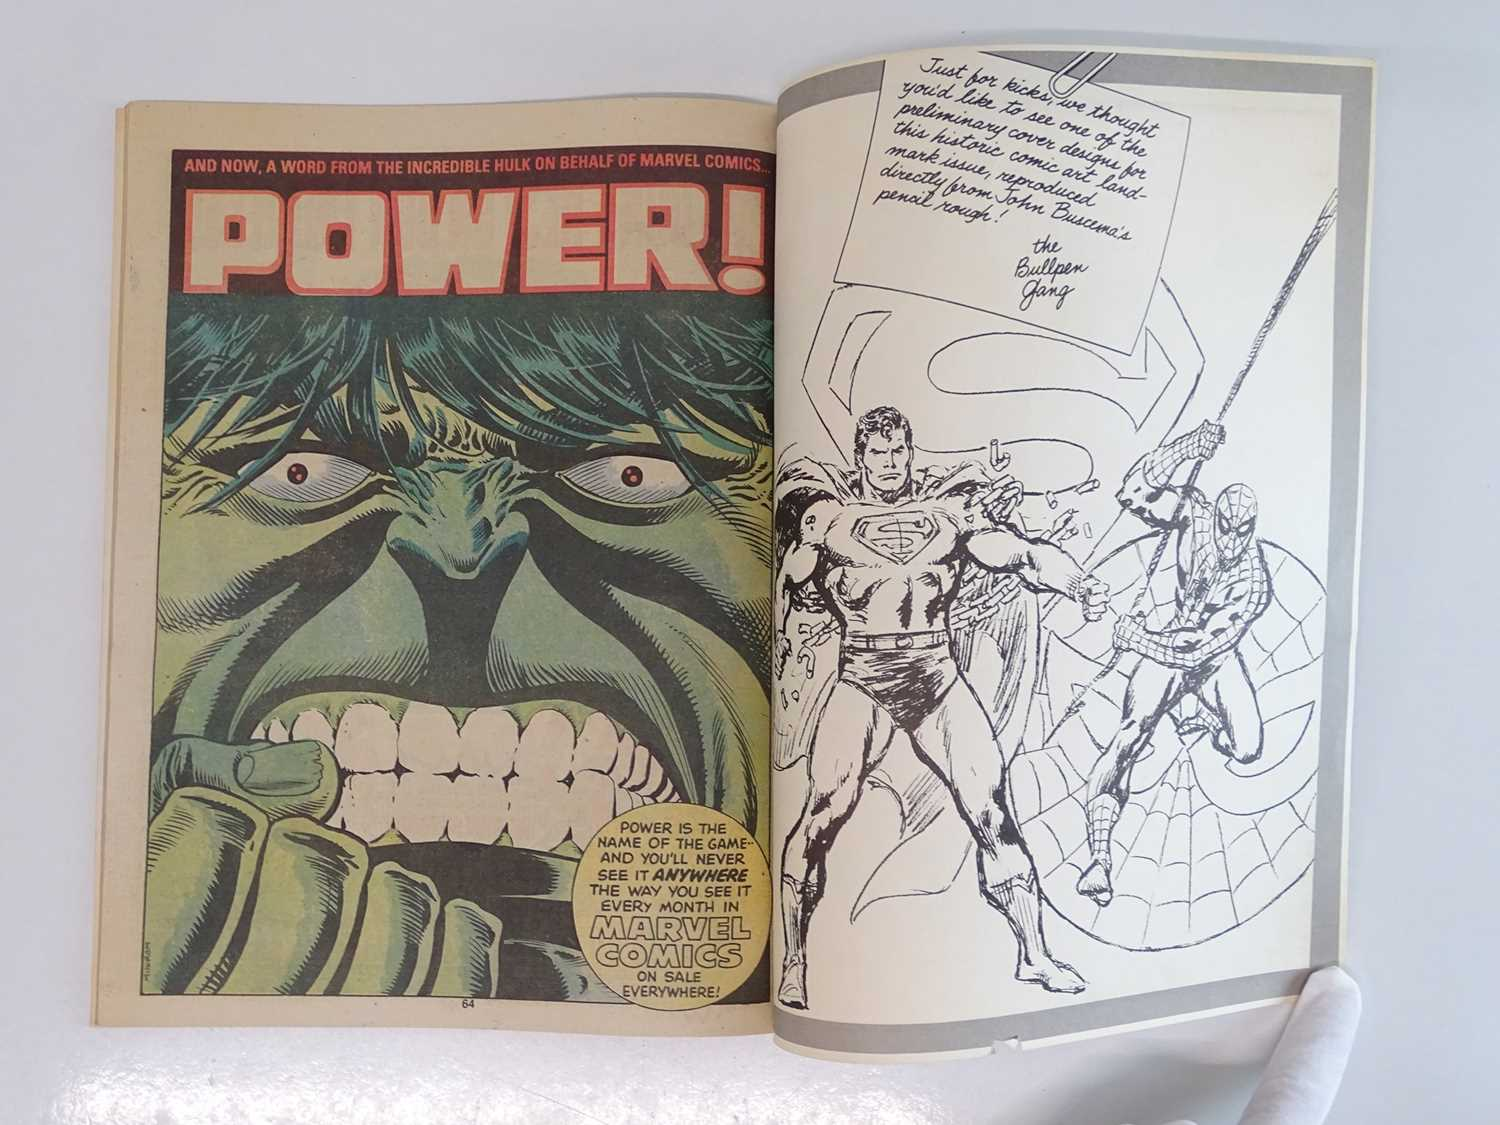 SUPERMAN AND SPIDER-MAN: COLLECTORS EDITION (1981 - MARVEL/DC) Special edition over-sized issue - Image 5 of 9